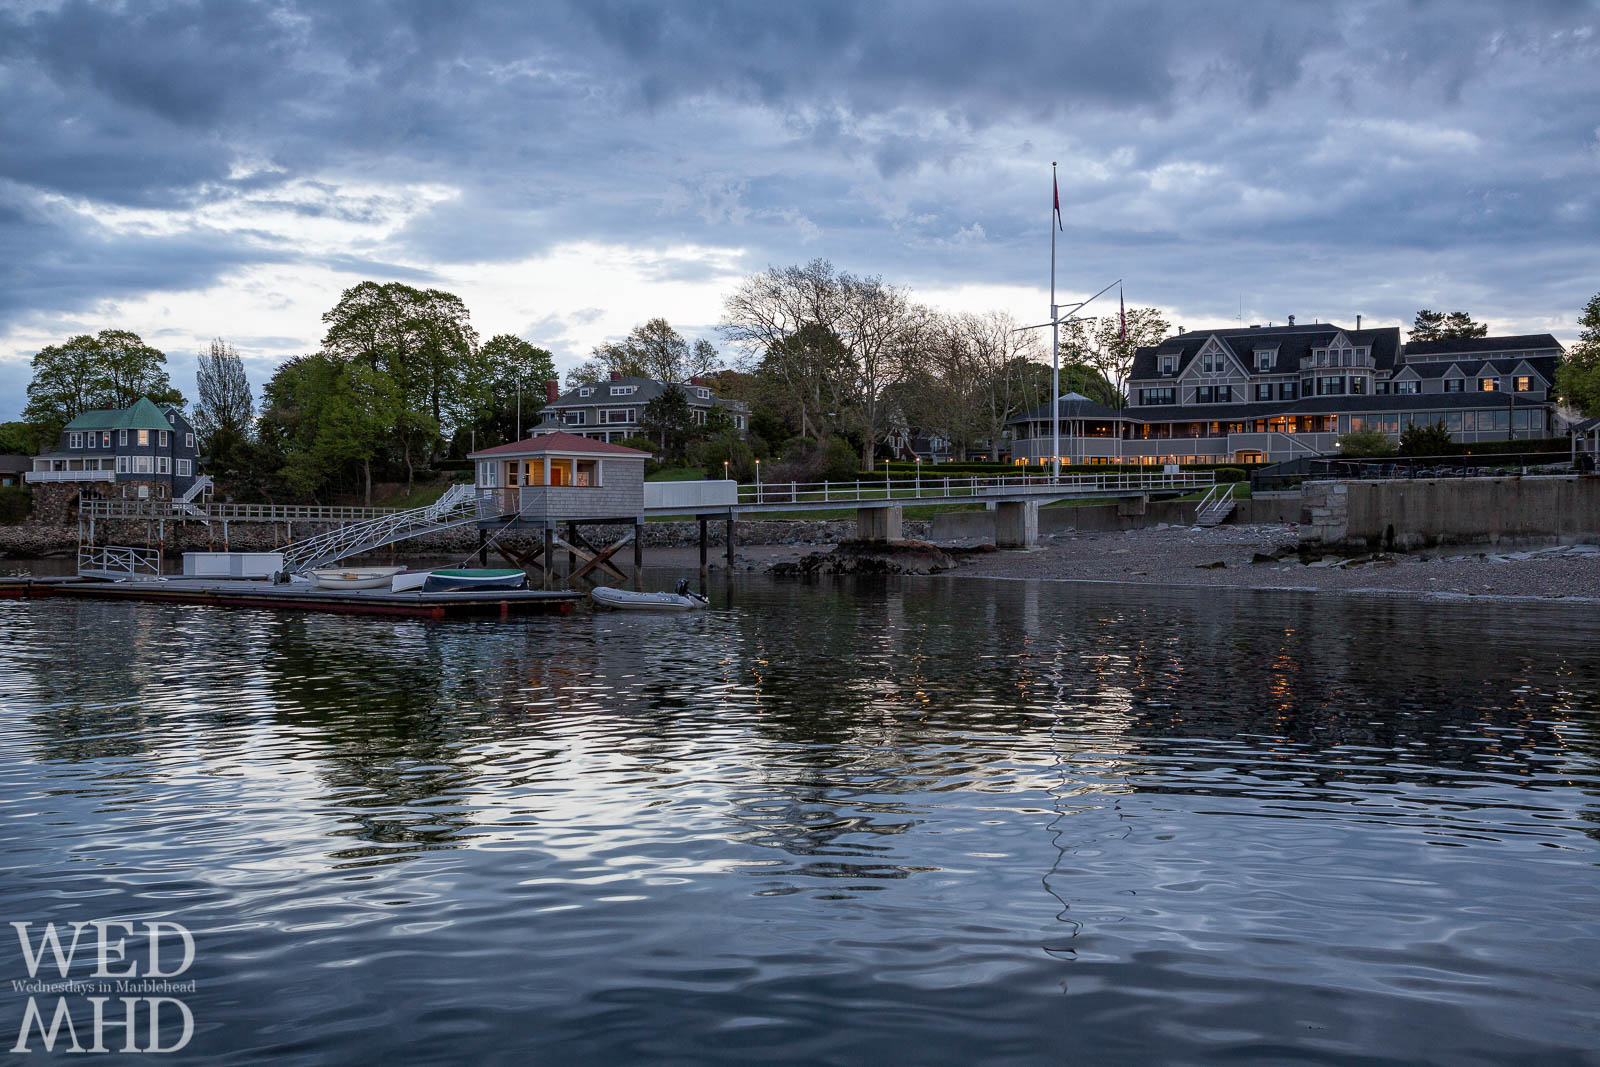 The lights of the Eastern Yacht Club are reflected in the still waters of Marblehead Harbor at sunset